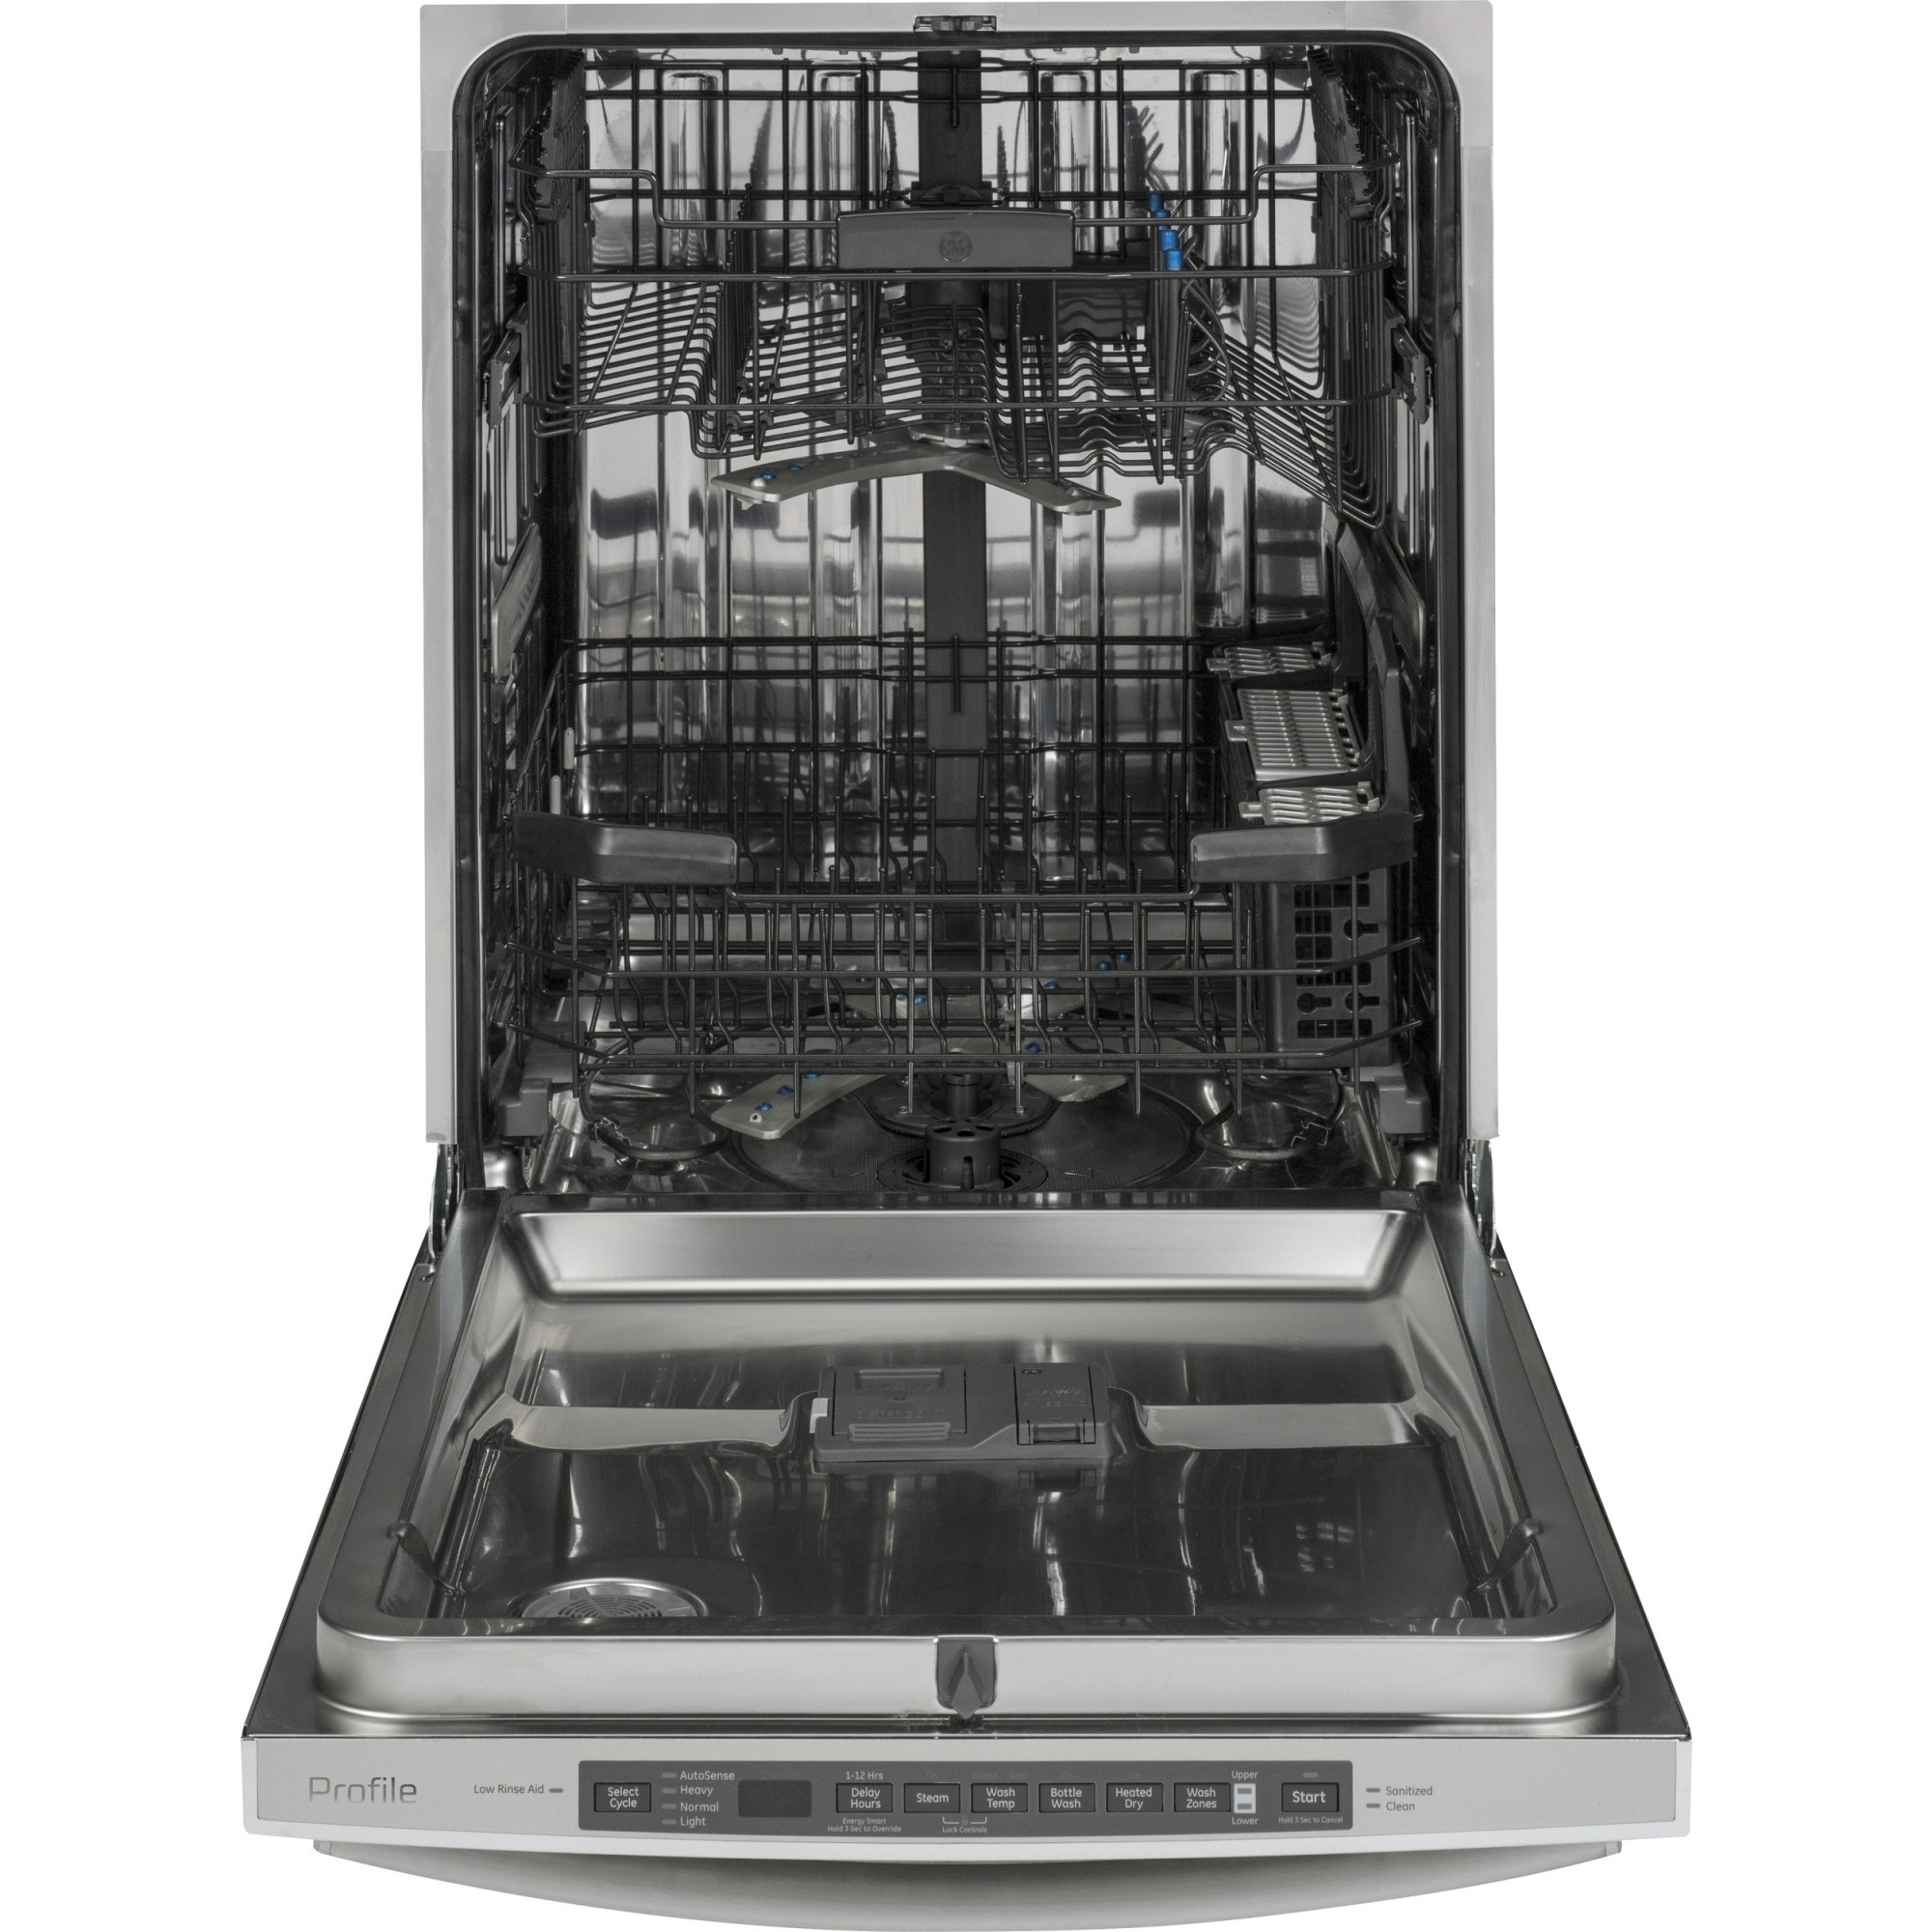 Pdt720sshss ge profile stainless steel interior - Dishwasher stainless steel interior ...